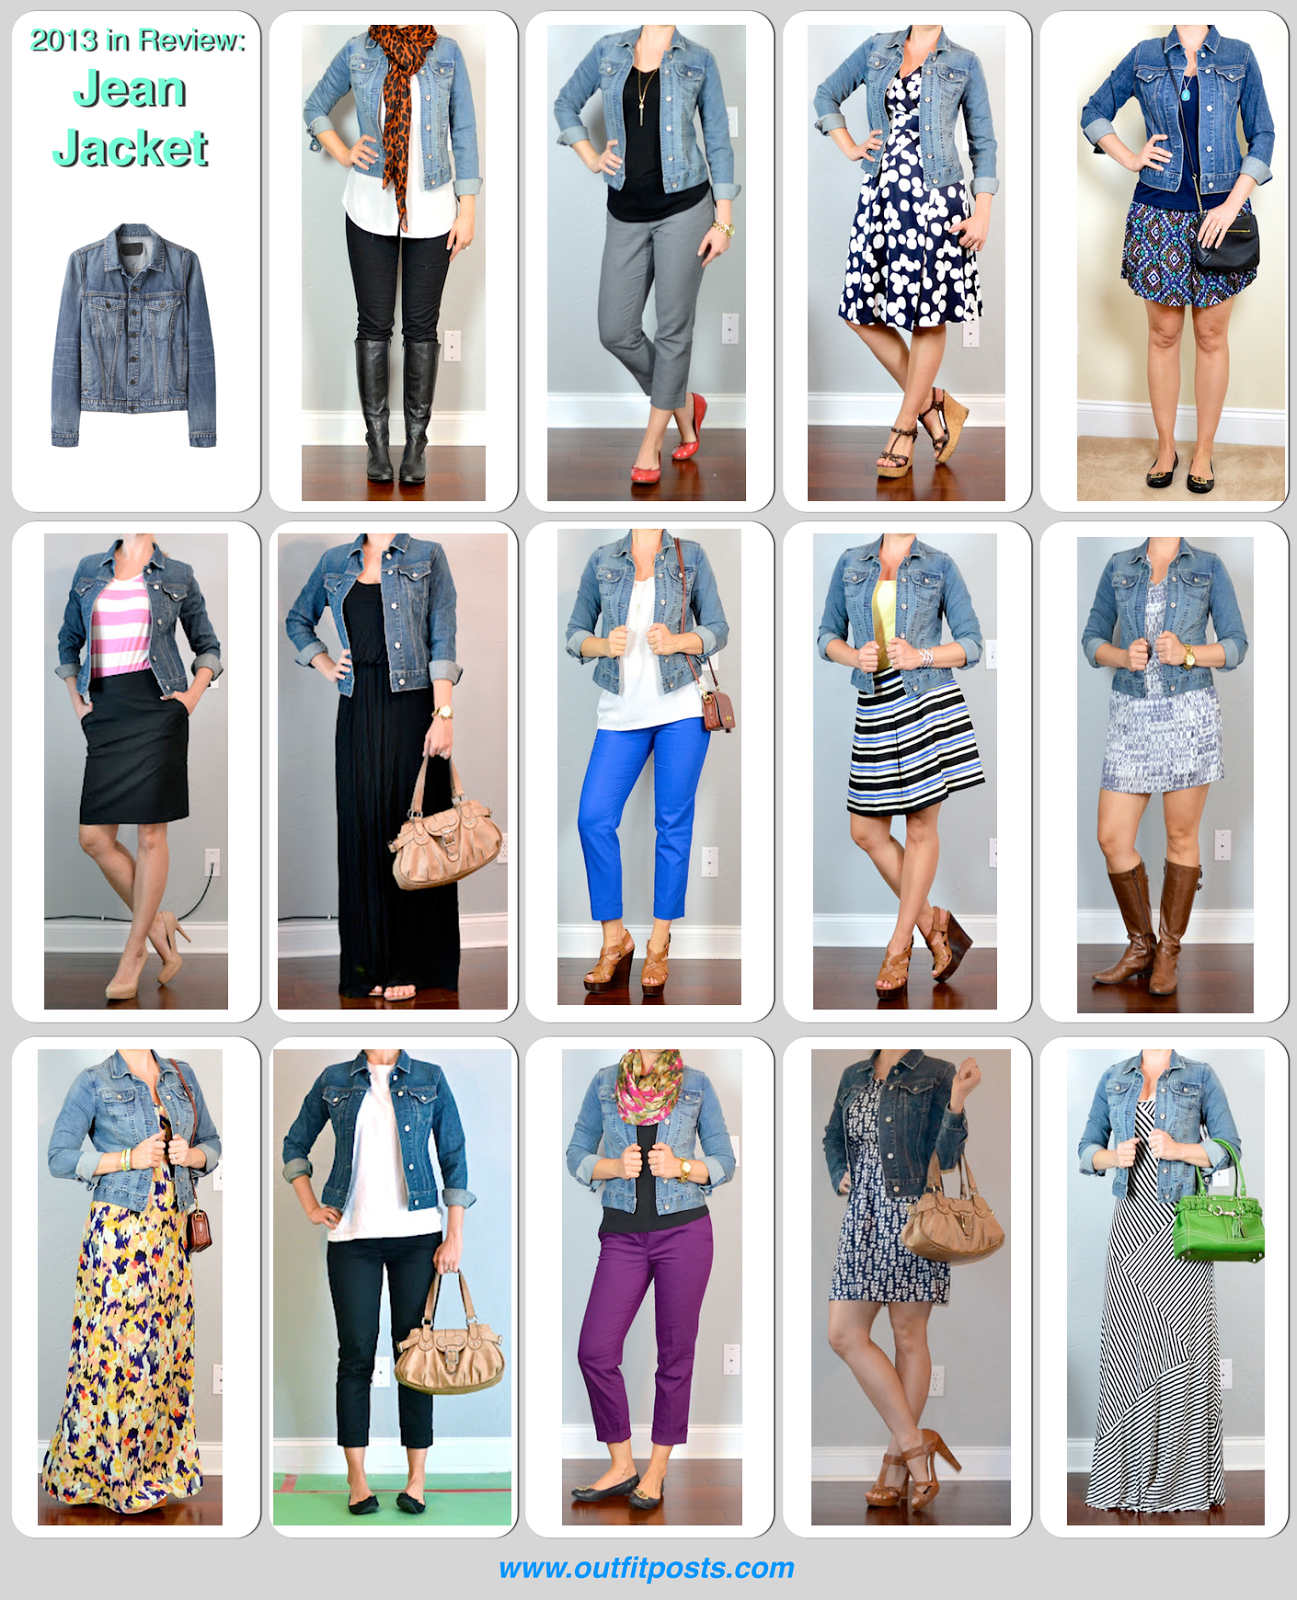 Jean Jacket Spring Outfit New Fashion Photo Blog